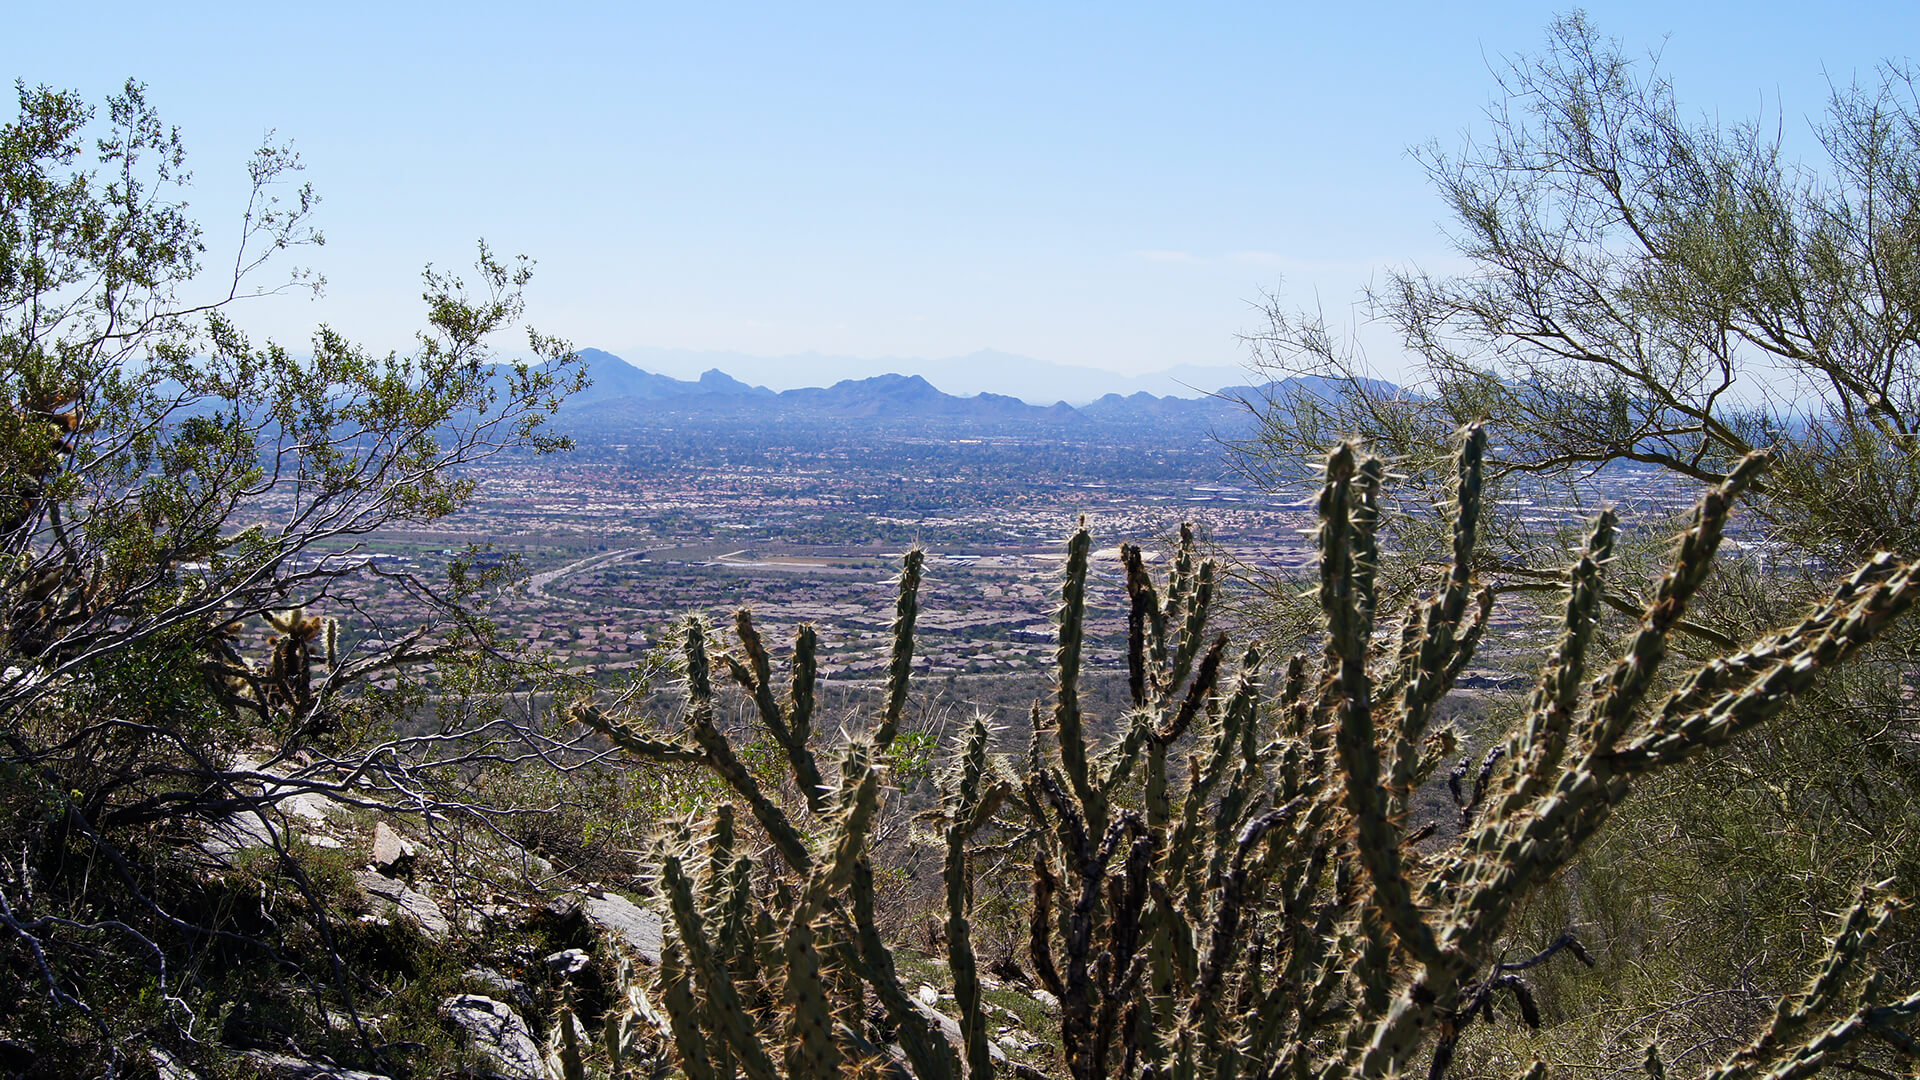 mcdowell mountains arizona wallpaper 61777